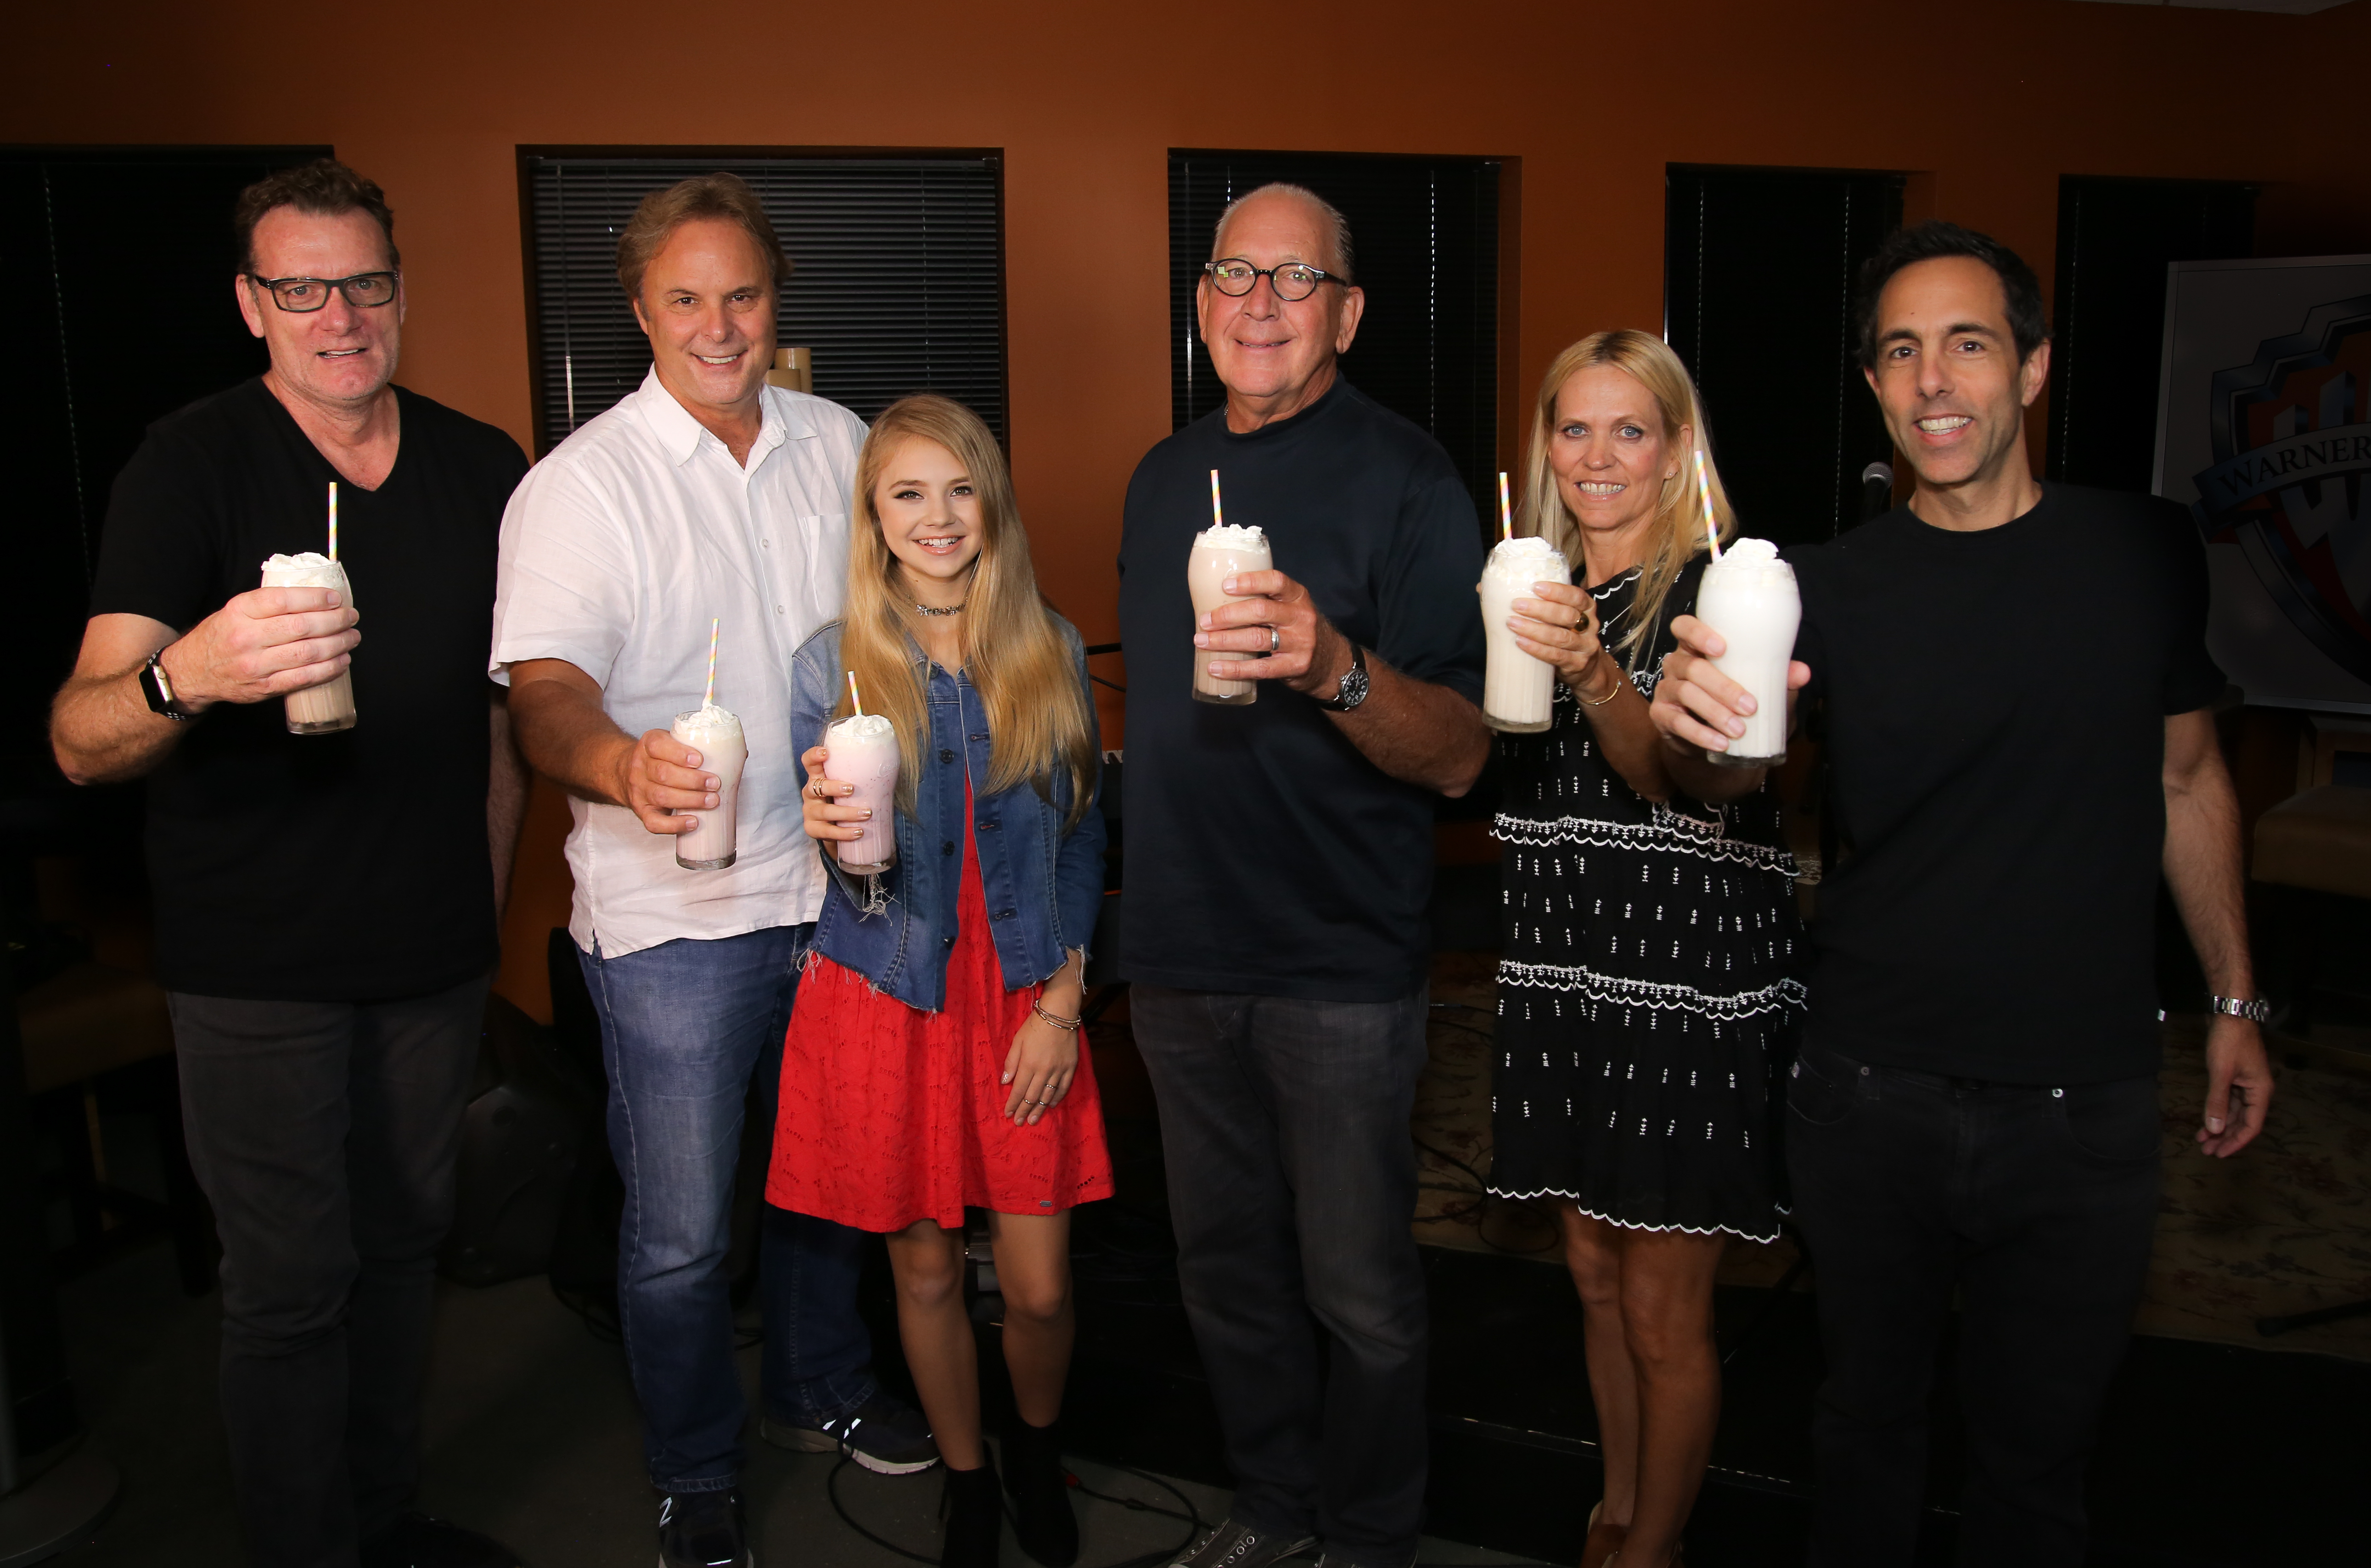 Pictured (L-R): Peter Strickland (CMO, WMN), Scott Hendricks (EVP A&R, WMN), Tegan Marie, John Esposito (Chairman and CEO, WMN), Veronica Zelle (Co-Founder and CCO, Sweety High), Frank Simonetti (Co-Founder and CEO, Sweety High); Photo Credit: Sweety High